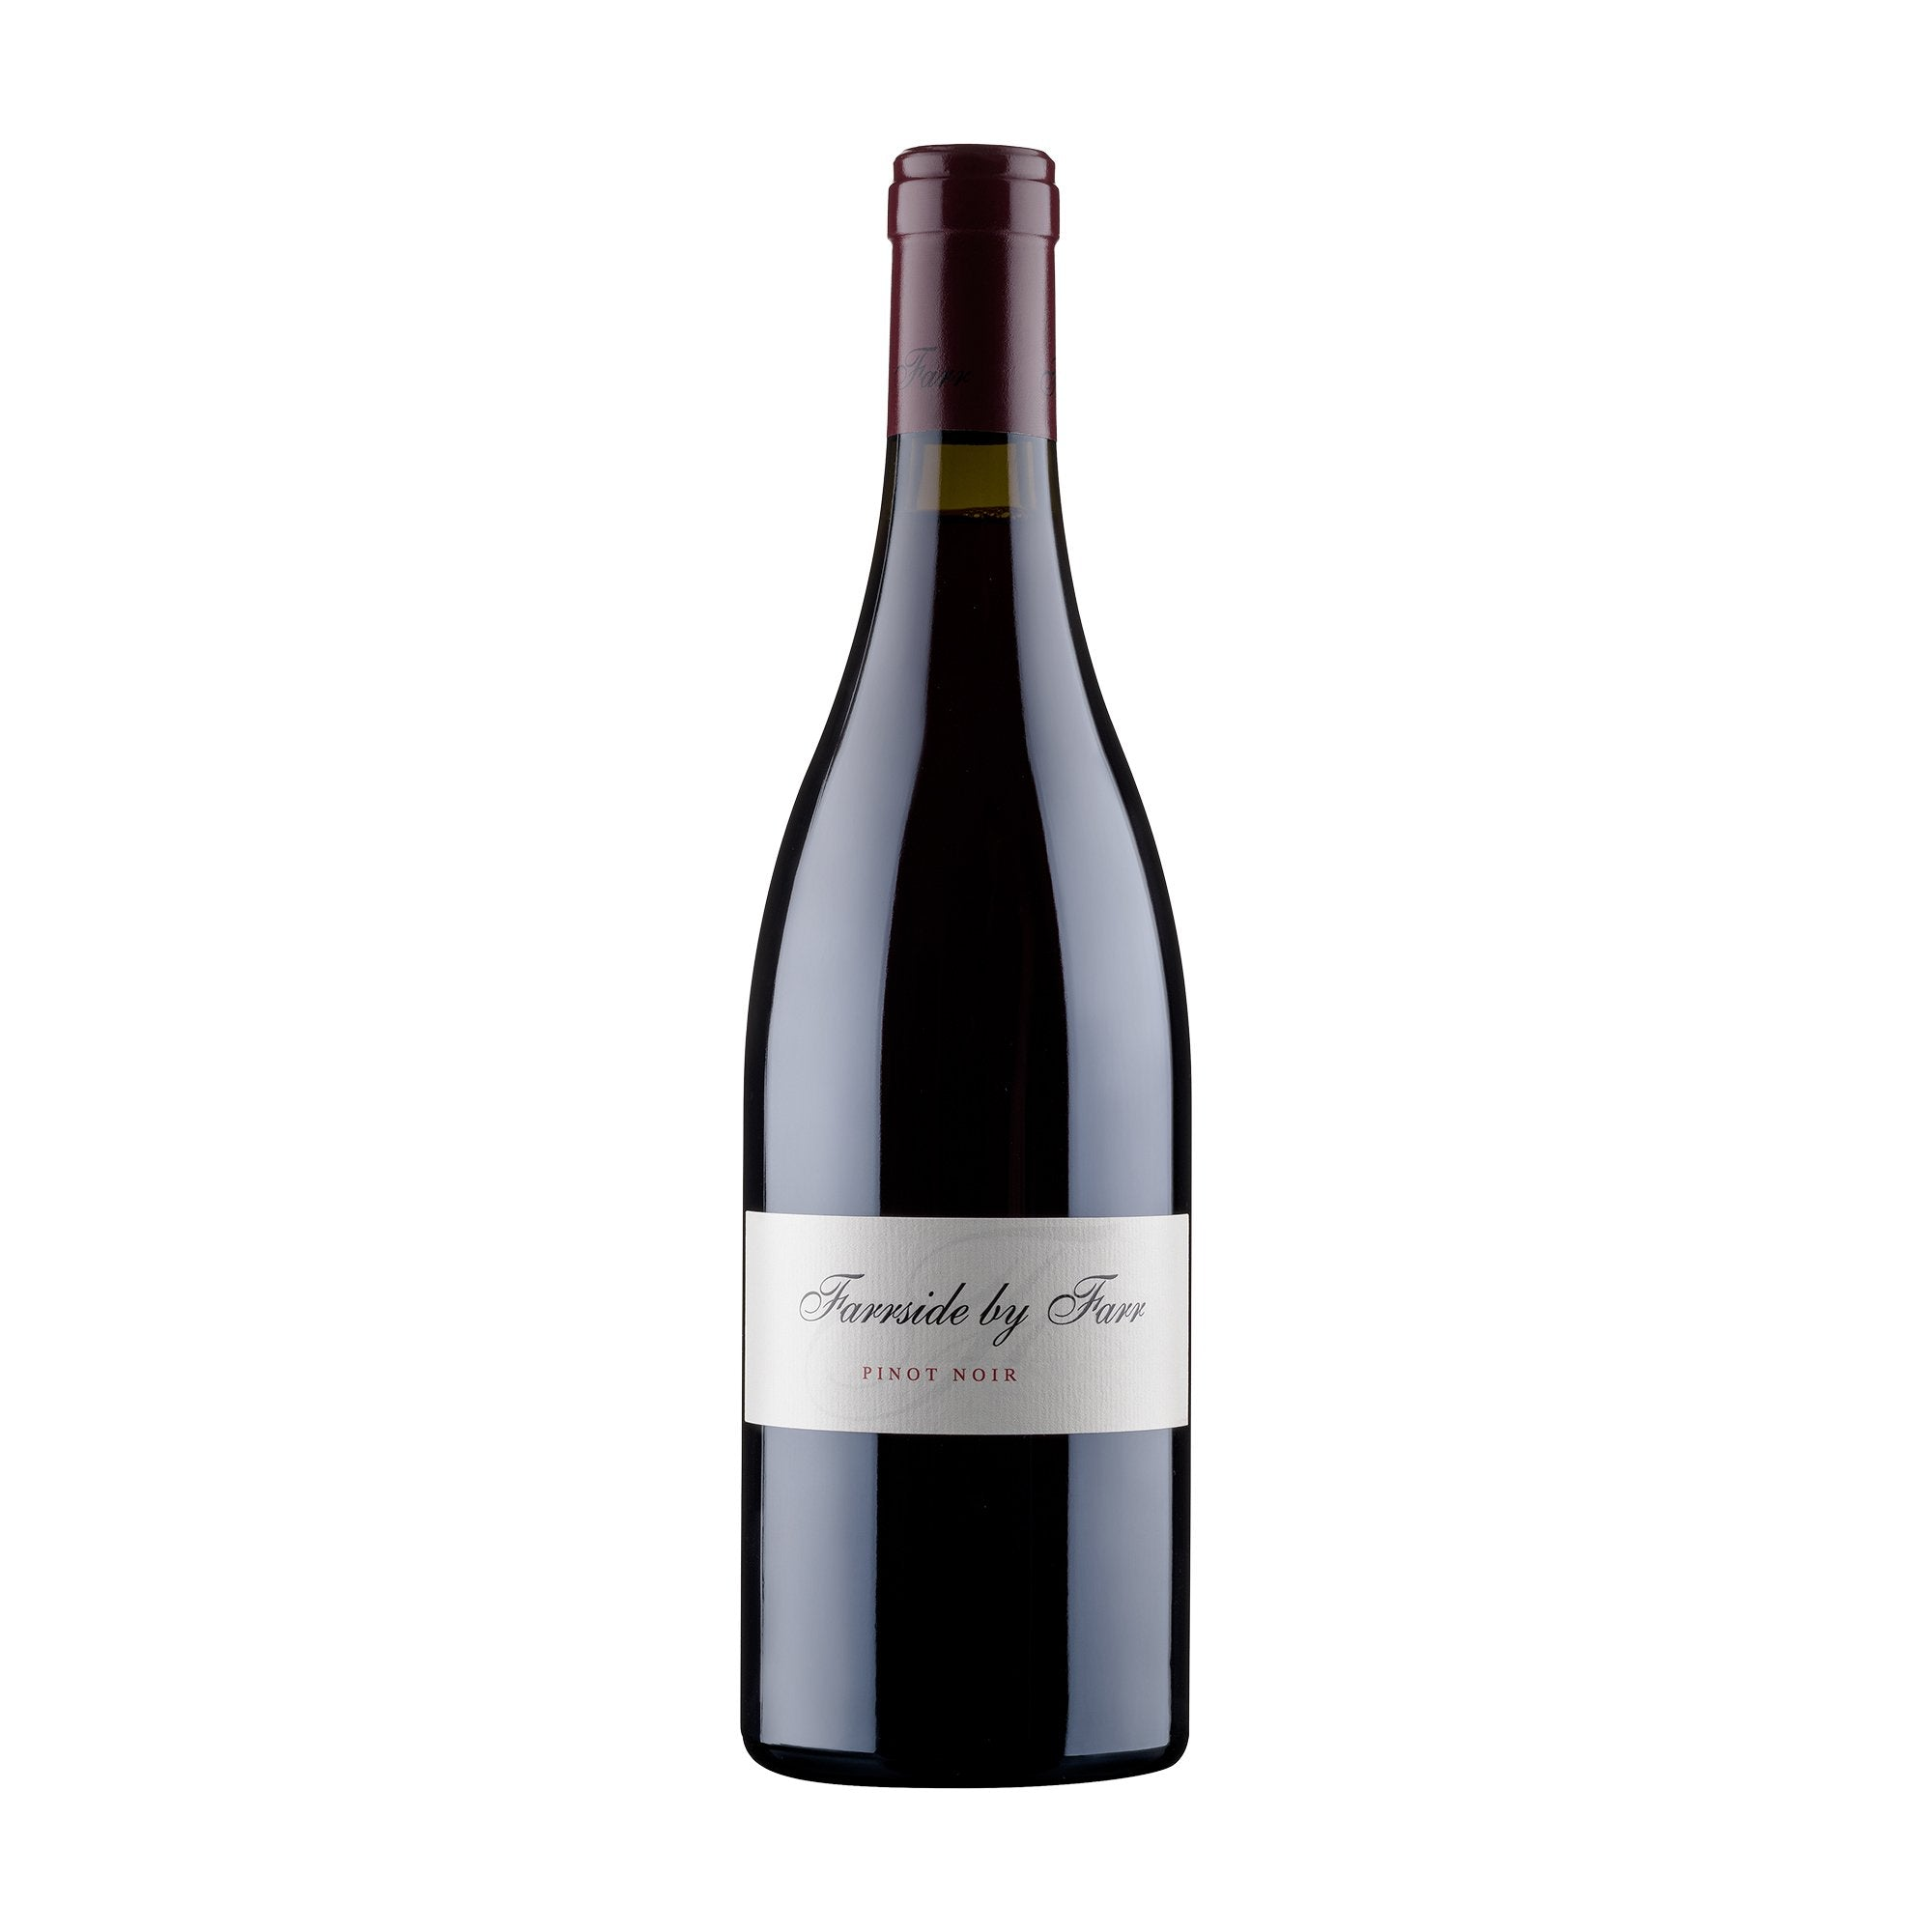 Red Wine By Farr 'Farrside' Geelong Pinot Noir 2016 (4392086372375)